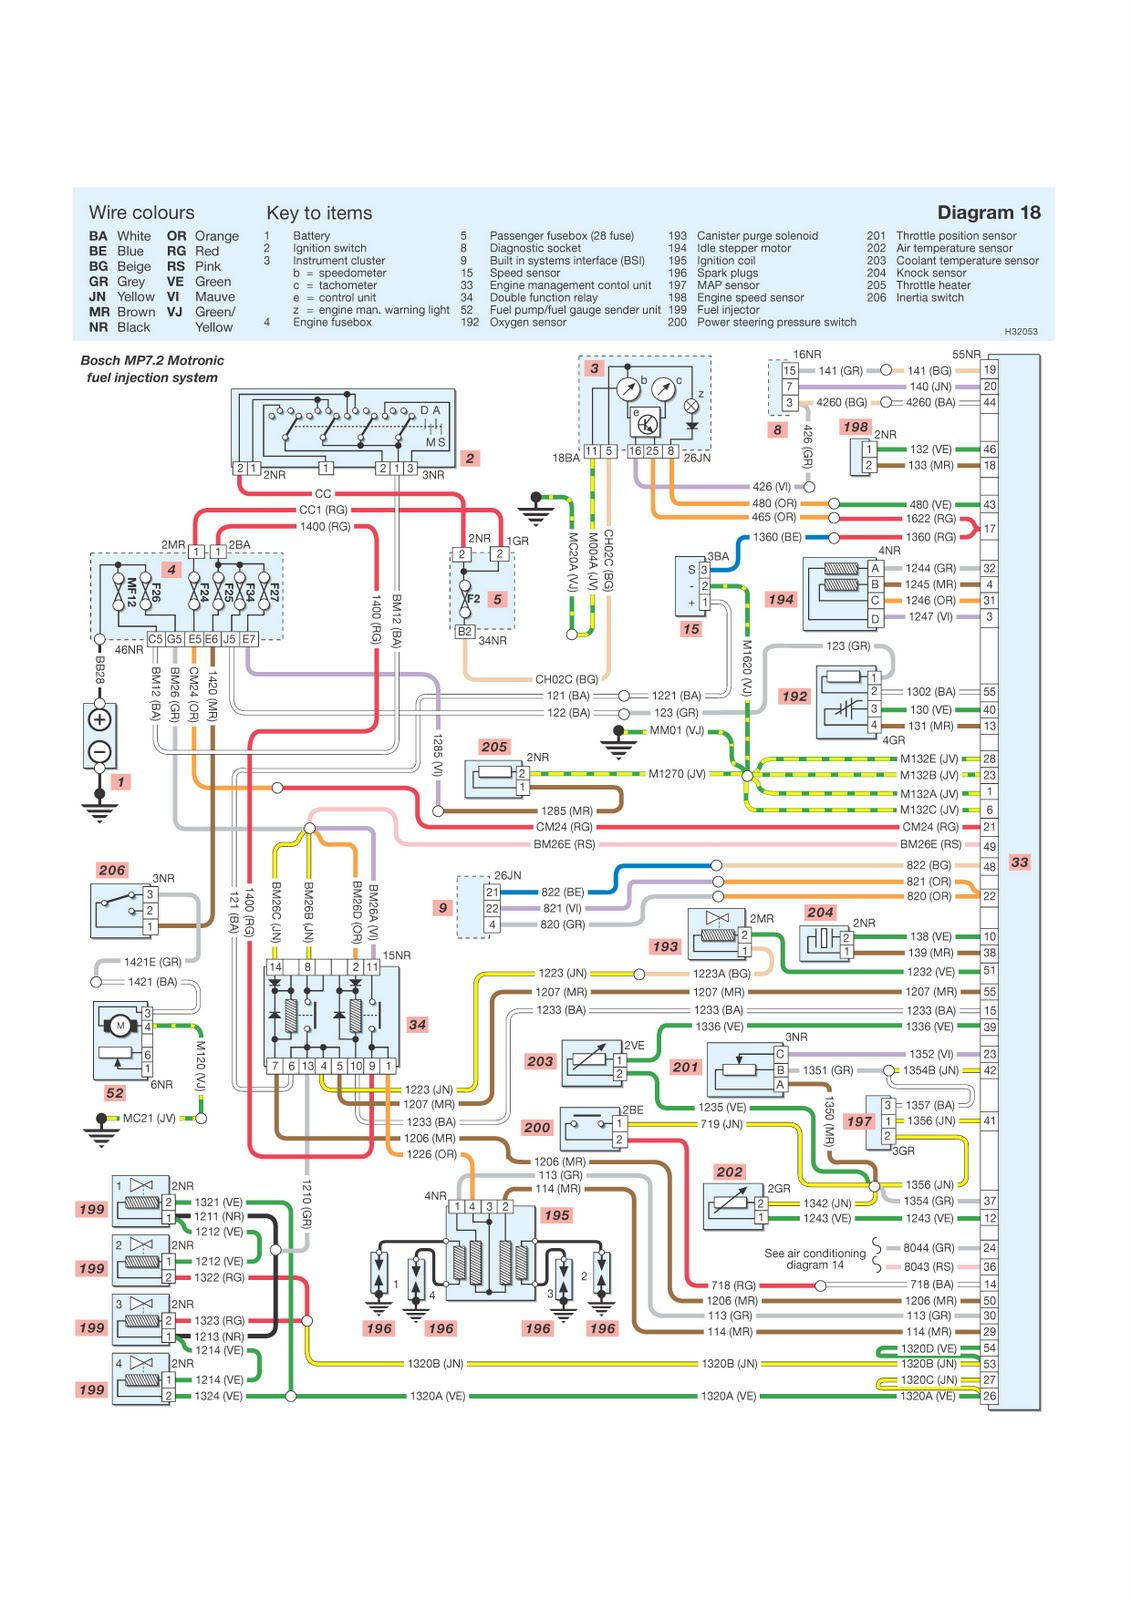 Wiring Diagram Peugeot 206 : Peugeot wiring diagrams wash wipe system abs